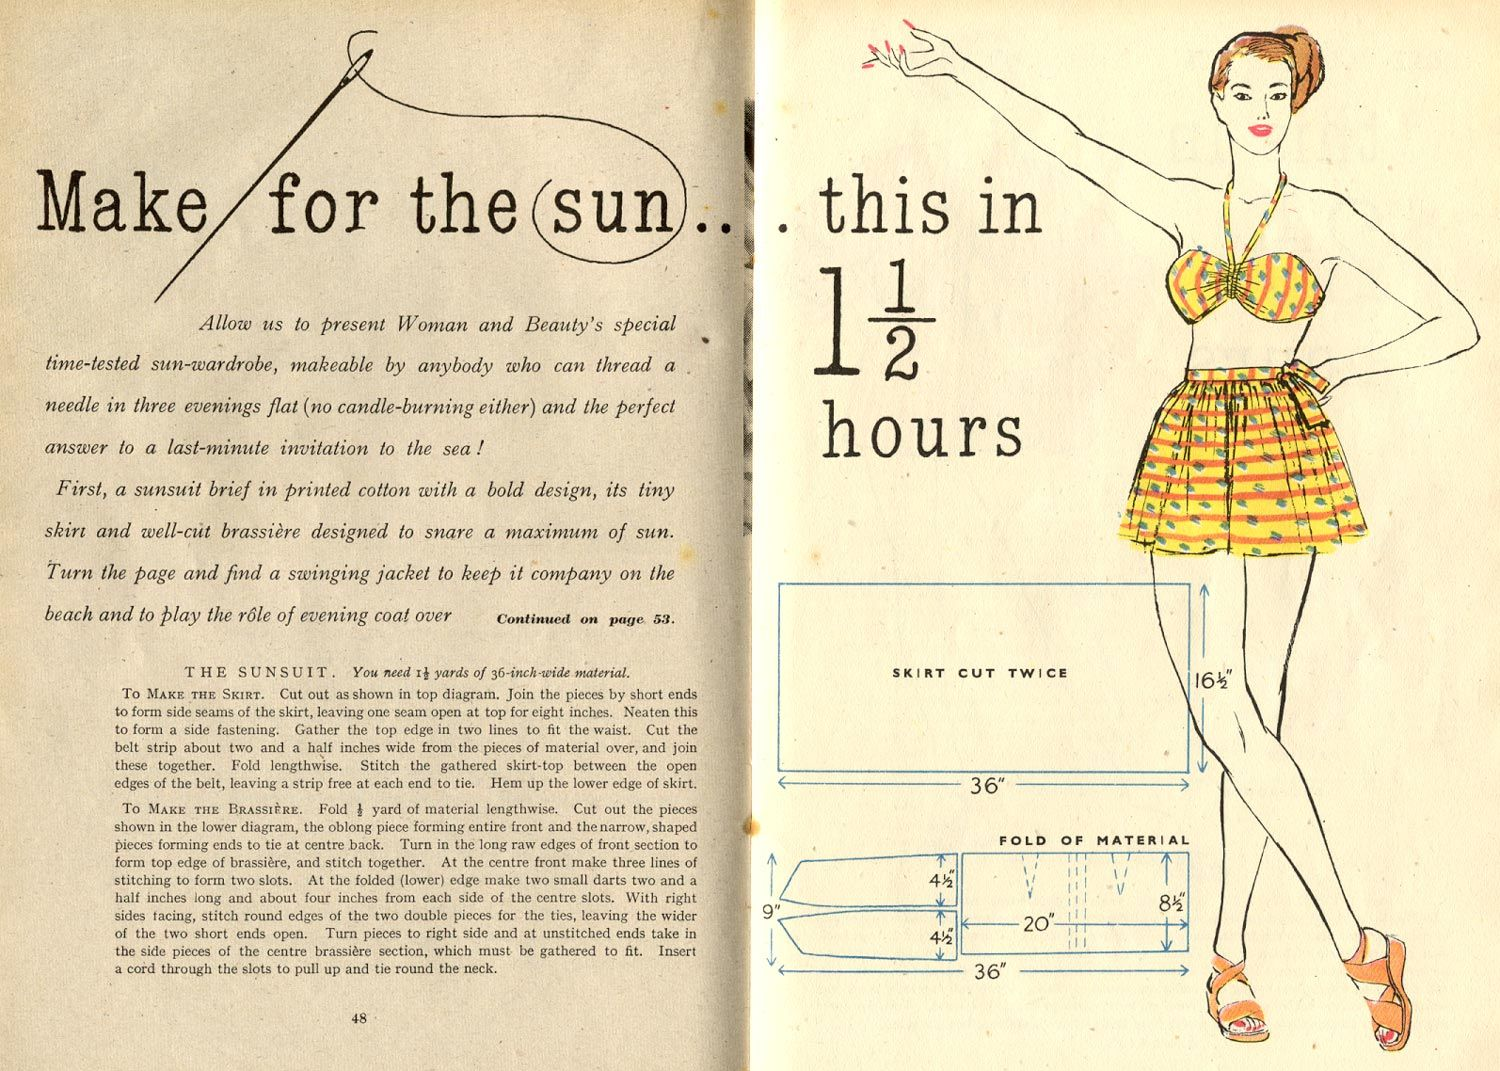 diy sunsuit, from Woman & Beauty July 1948